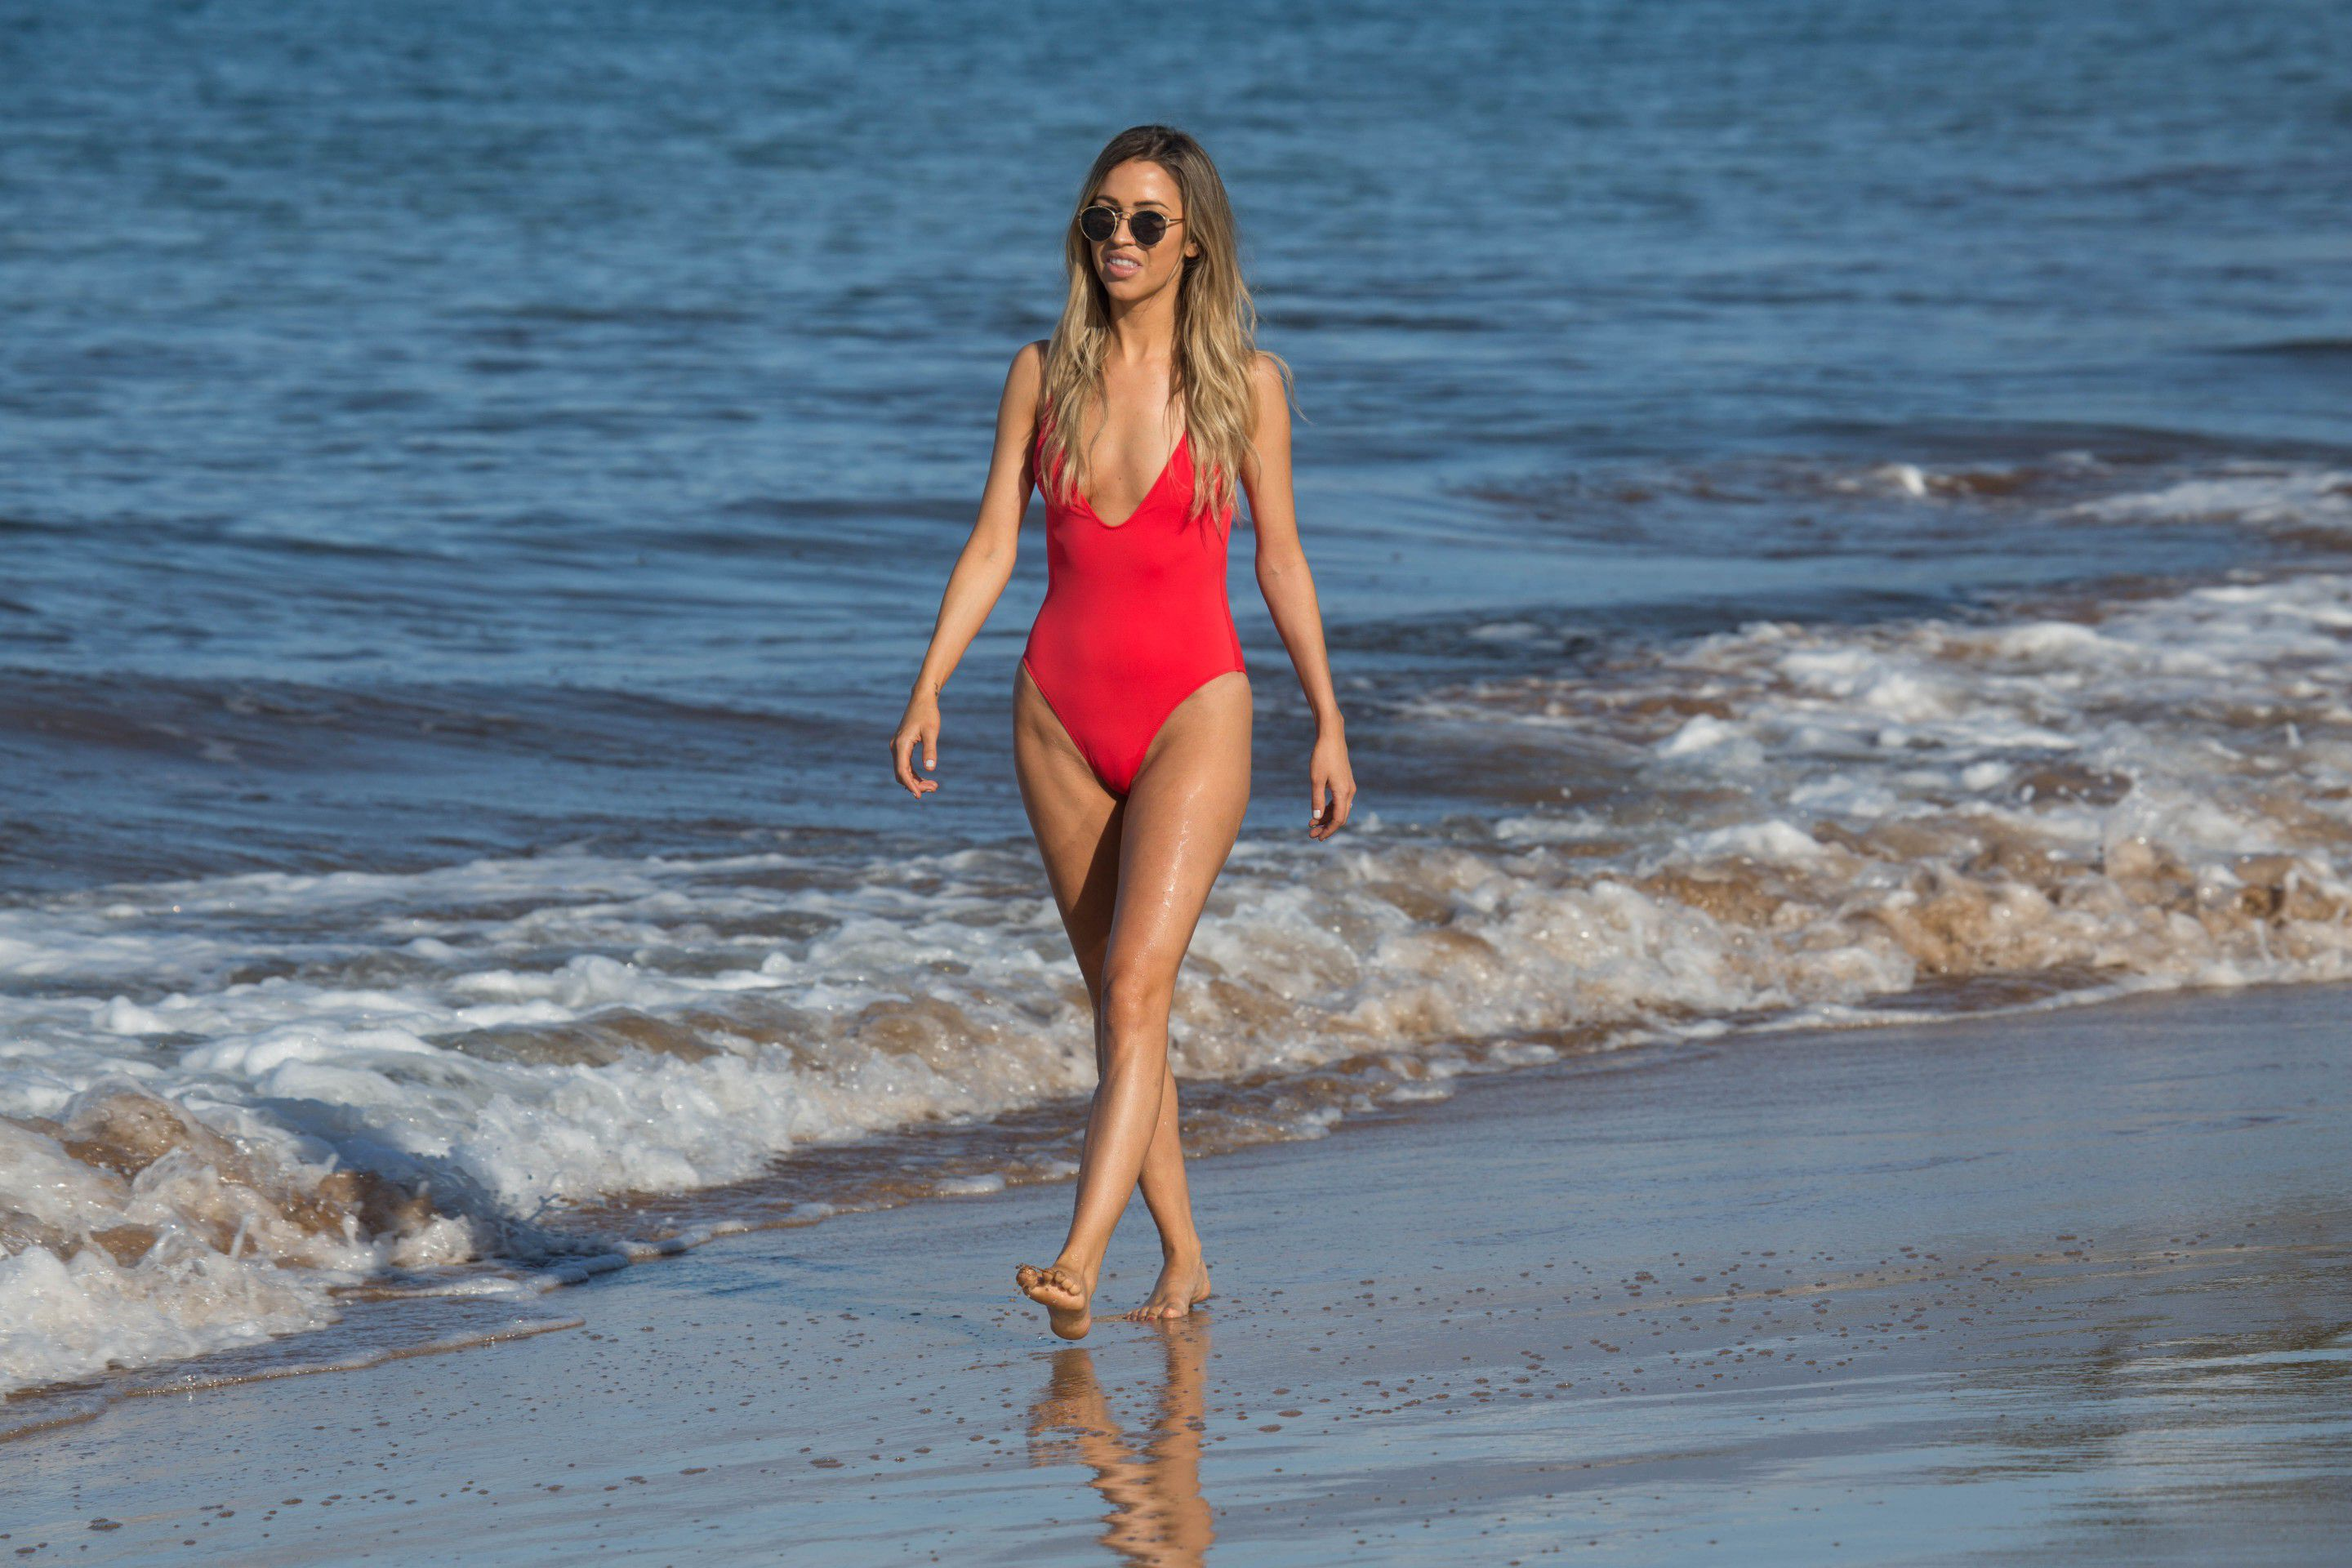 kaitlyn-bristowe-cameltoe-in-red-swimsuit-on-the-beach-in-hawaii-3688